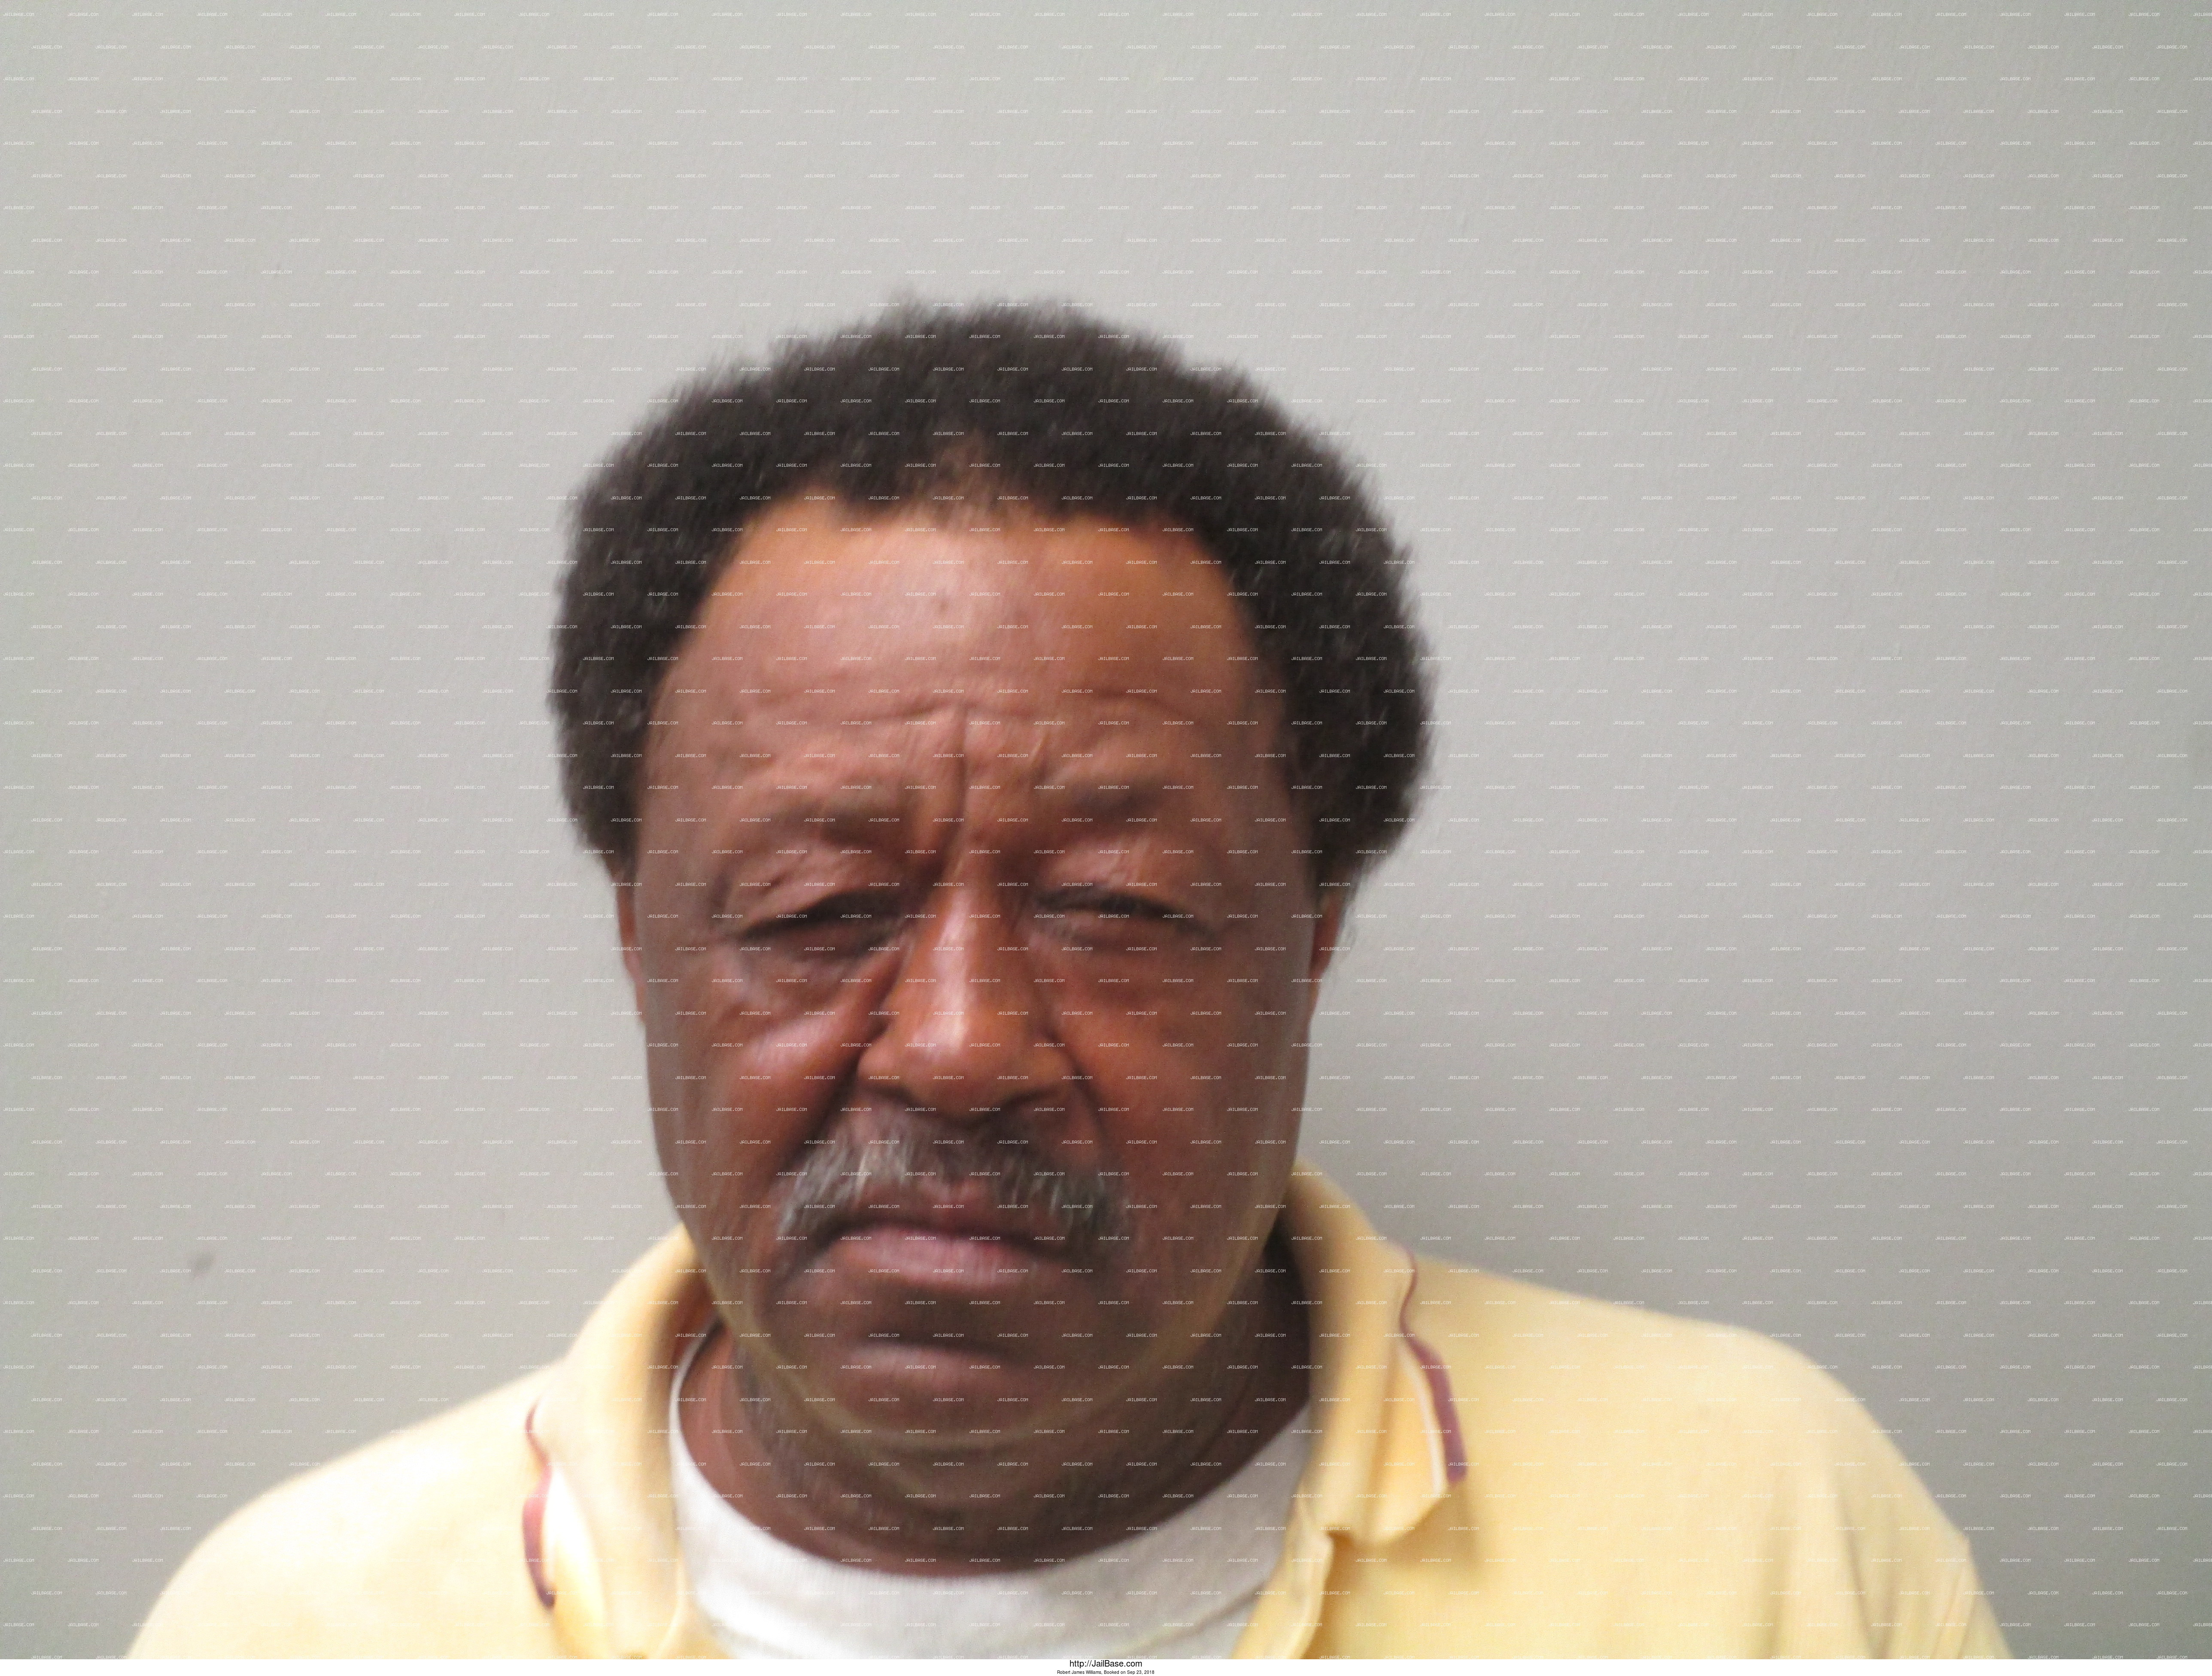 ROBERT JAMES WILLIAMS mugshot picture